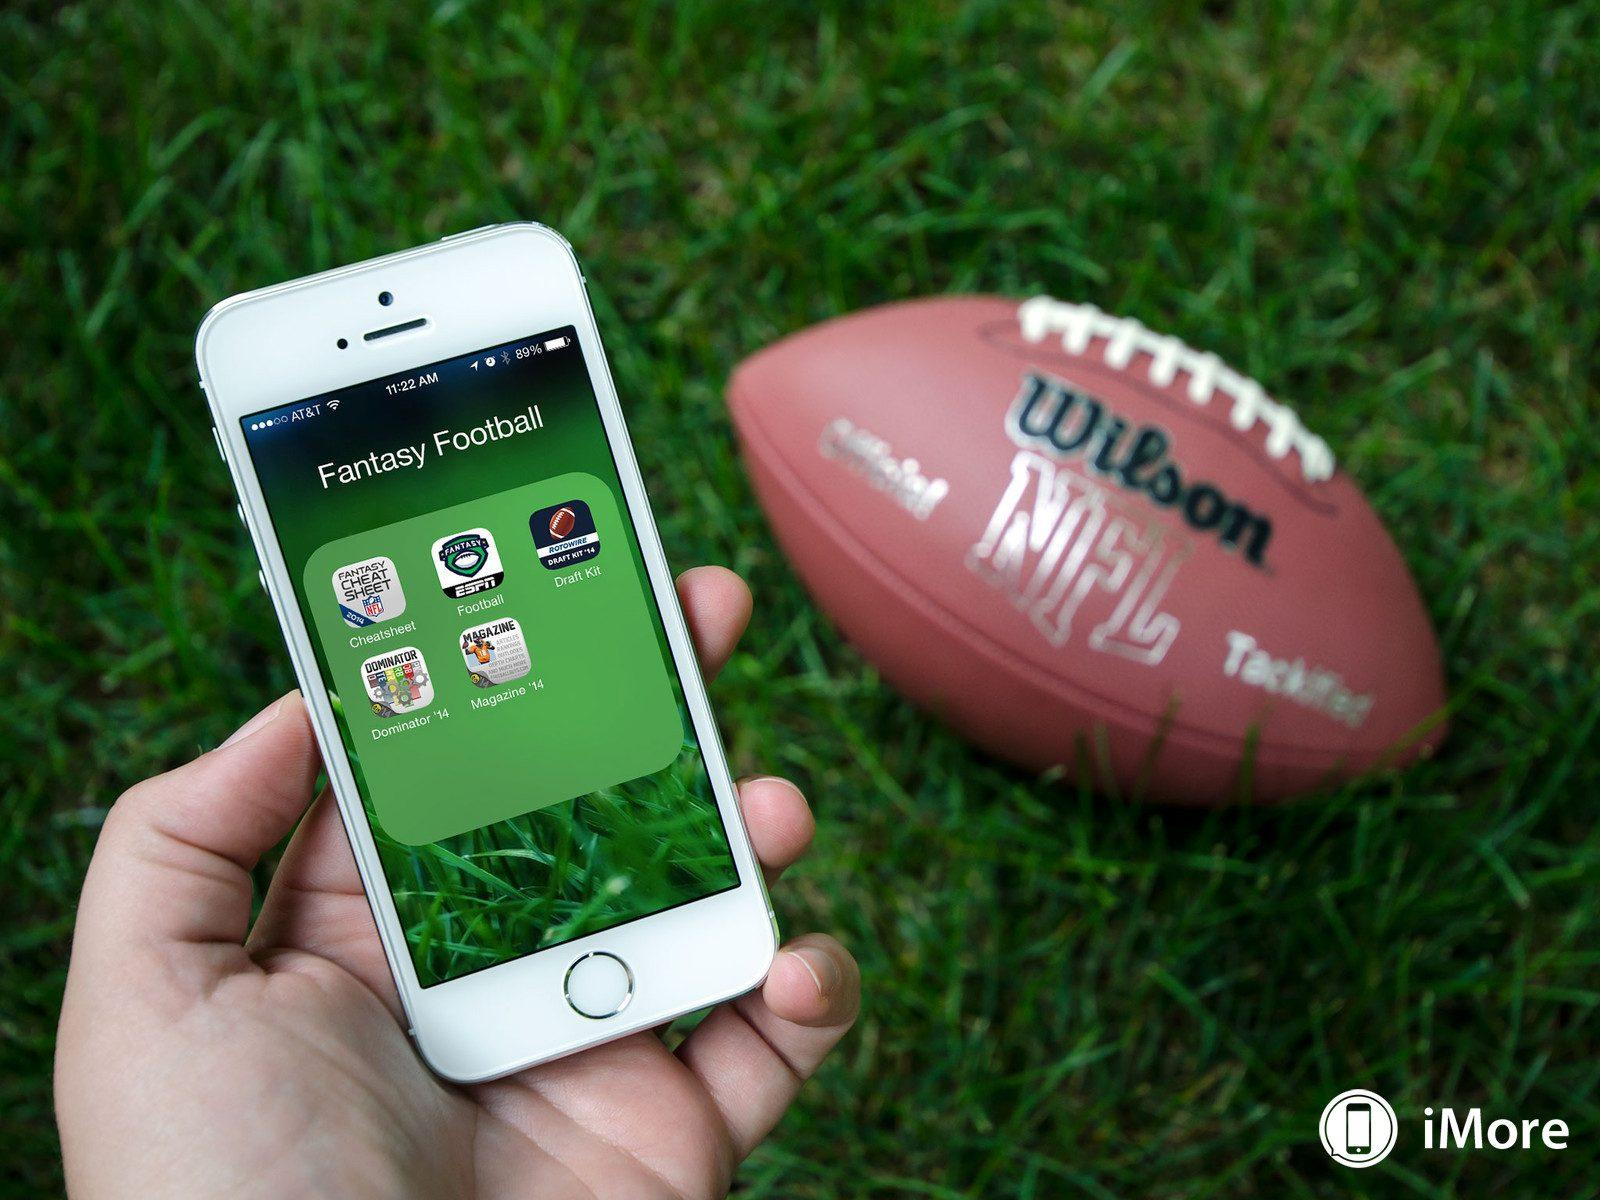 ESPNs Fantasy Football App crashes on the first day of the season, upsetting many fans.